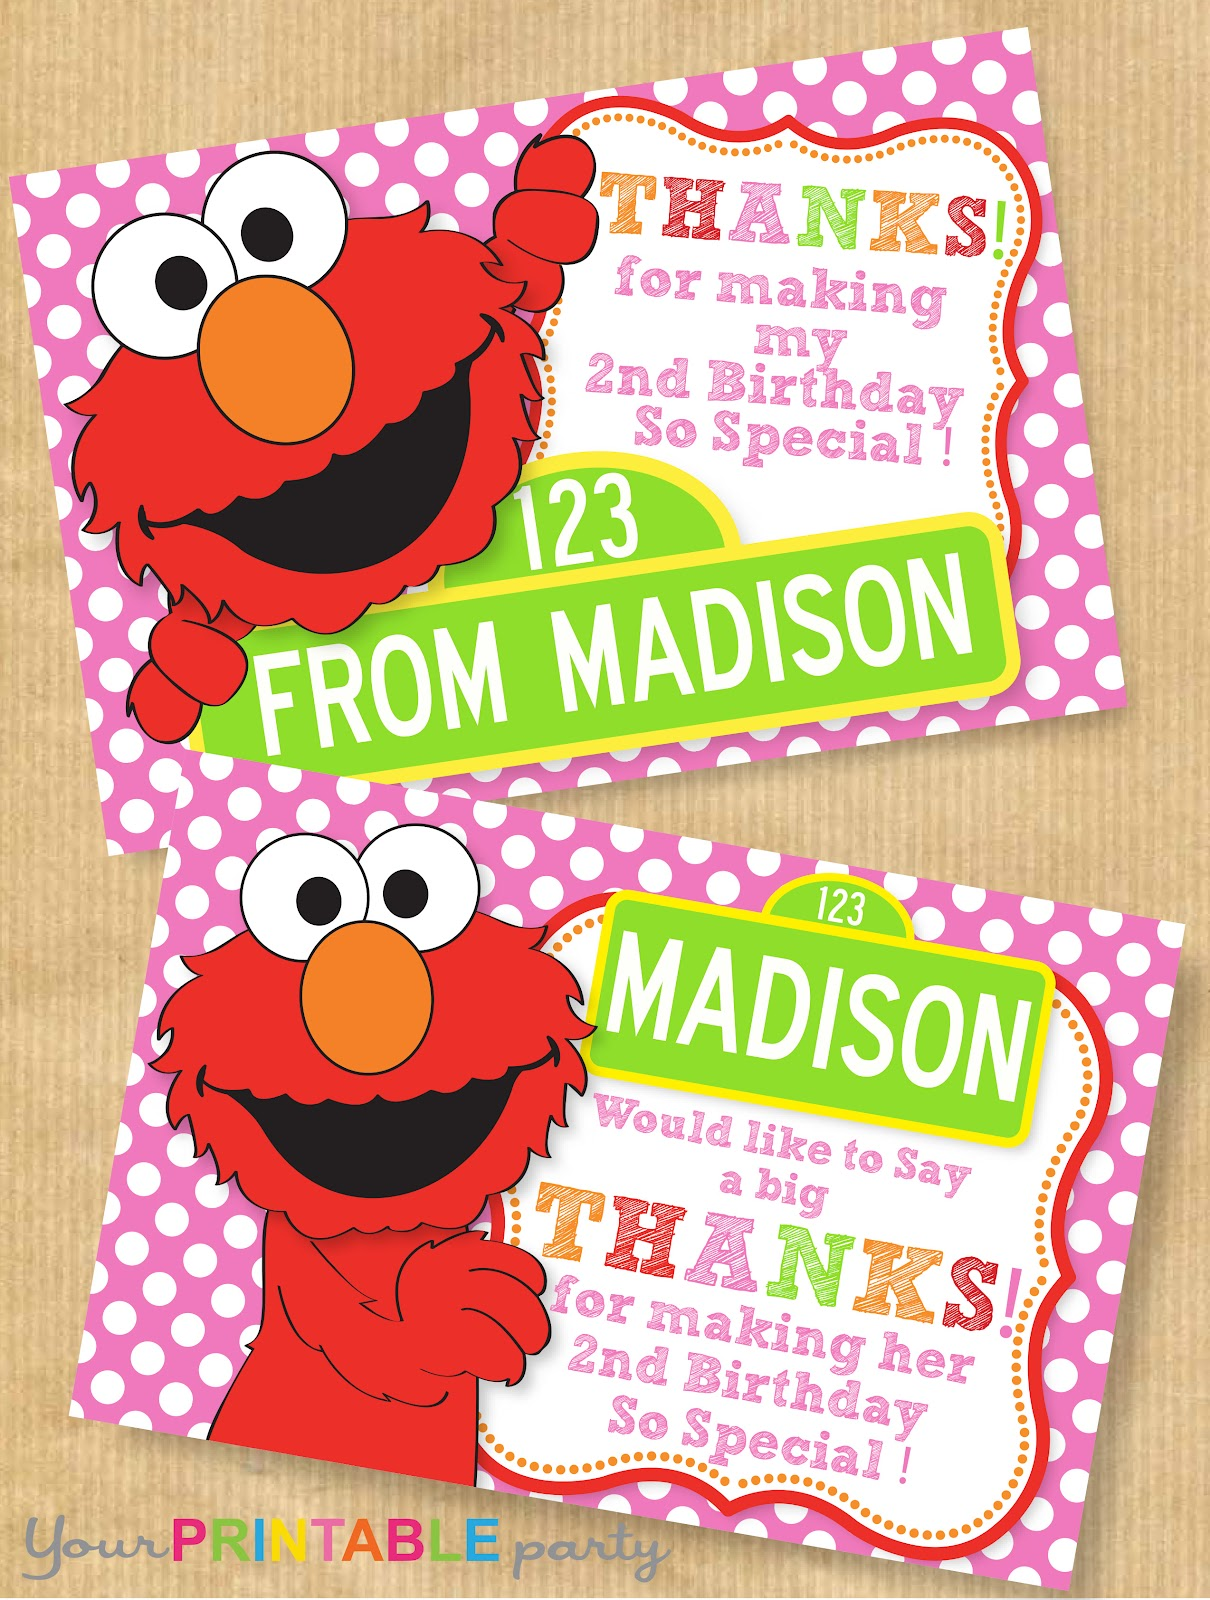 Your Printable Party New Sesame Street Inspired Thank You Notes